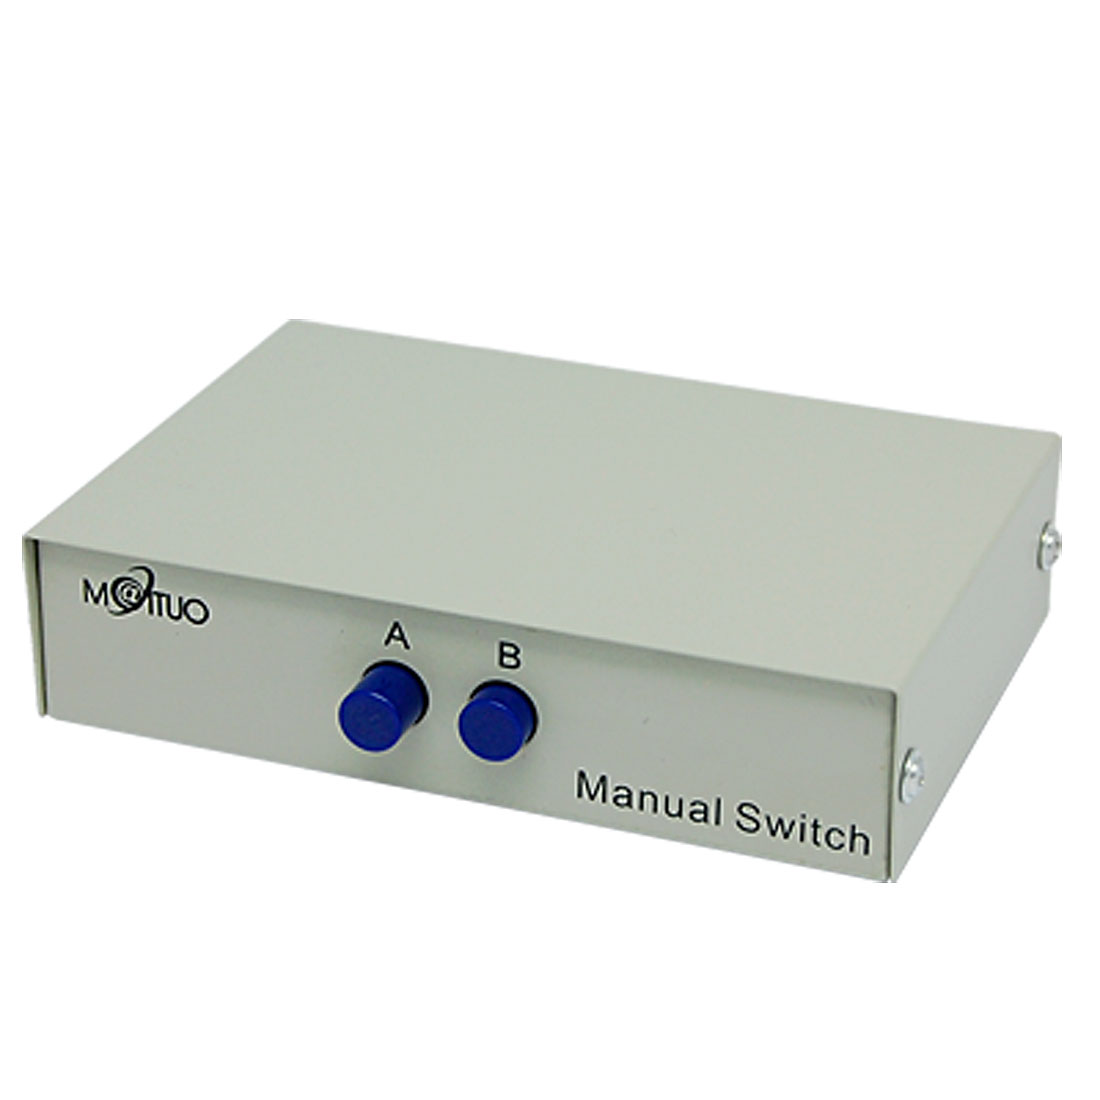 2 Port DB9 Male AB Data Manual Sharing Switch Box 2 Way